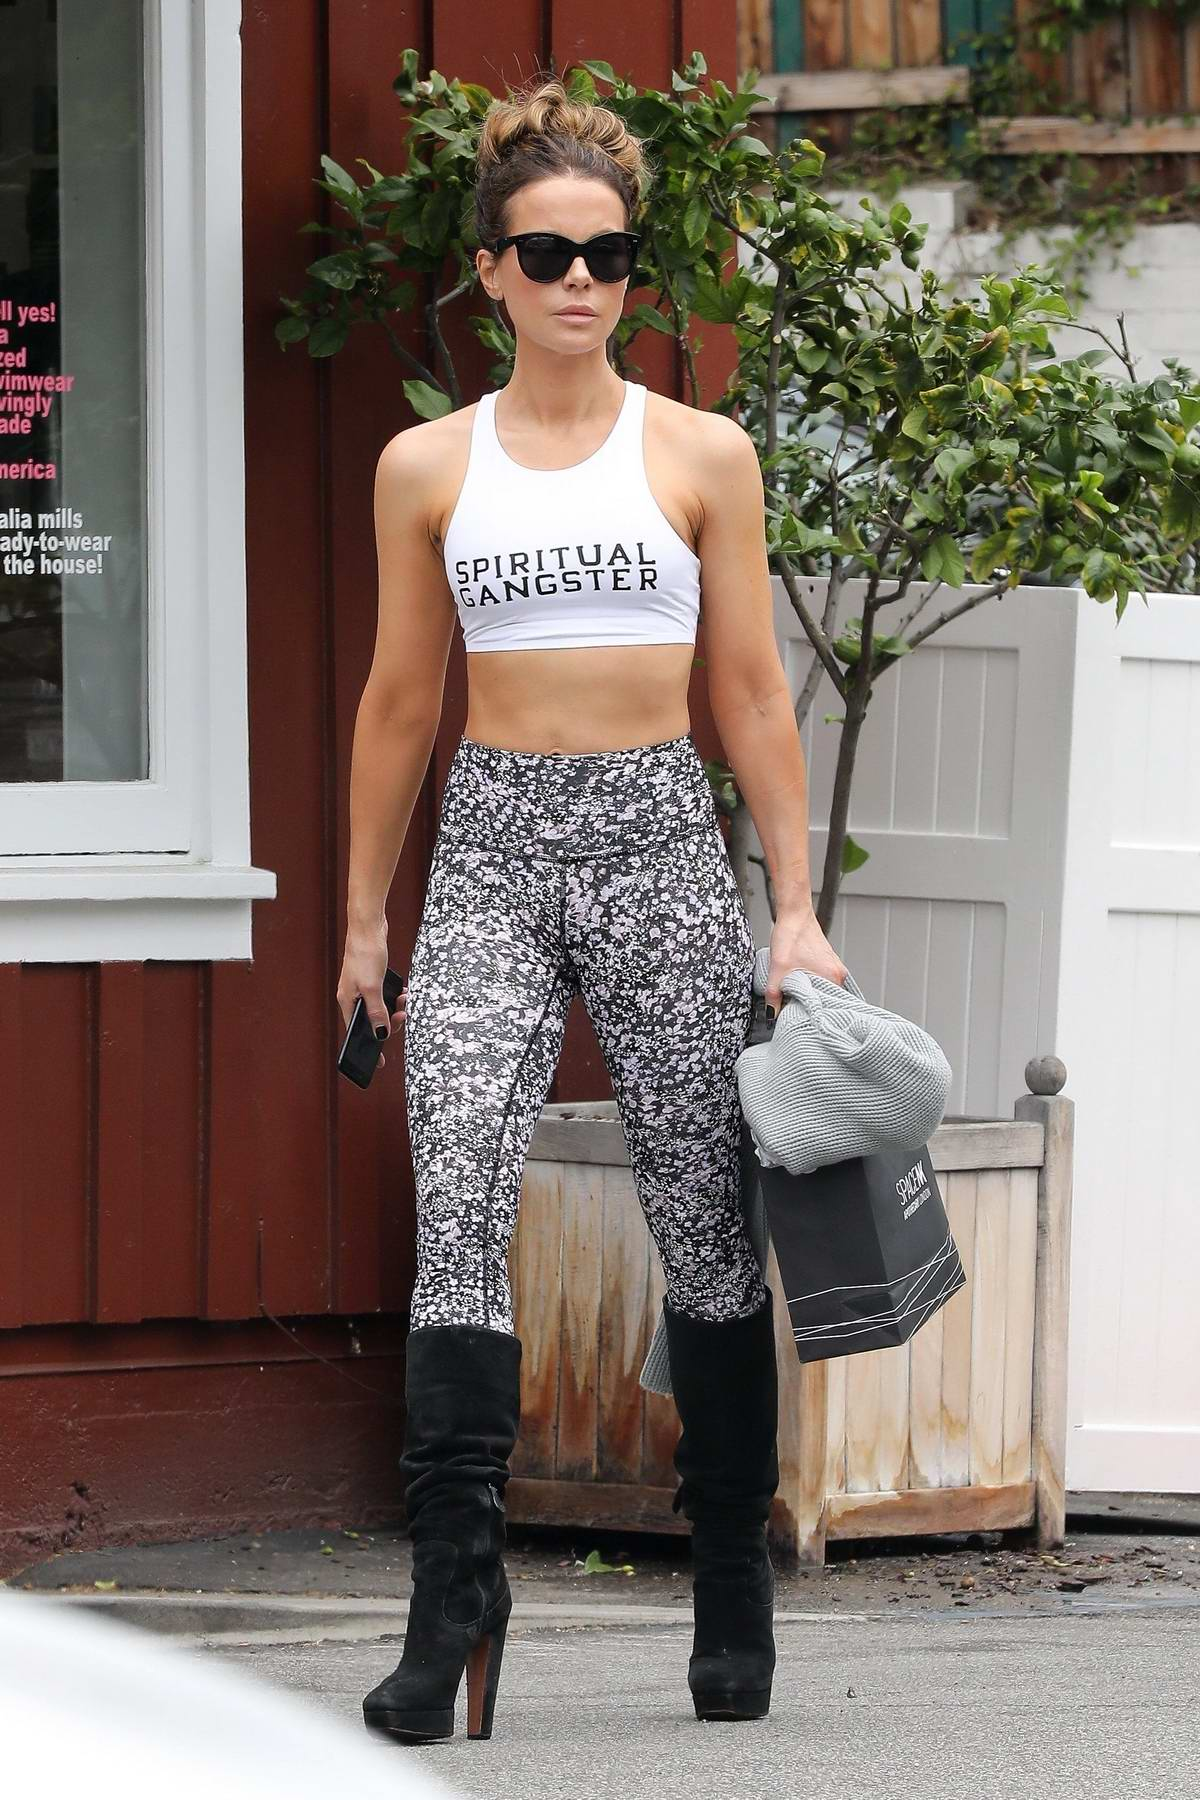 Kate Beckinsale looks incredible in a cropped tank top and patterned leggings as she leaves Malia Mills in Brentwood, Los Angeles